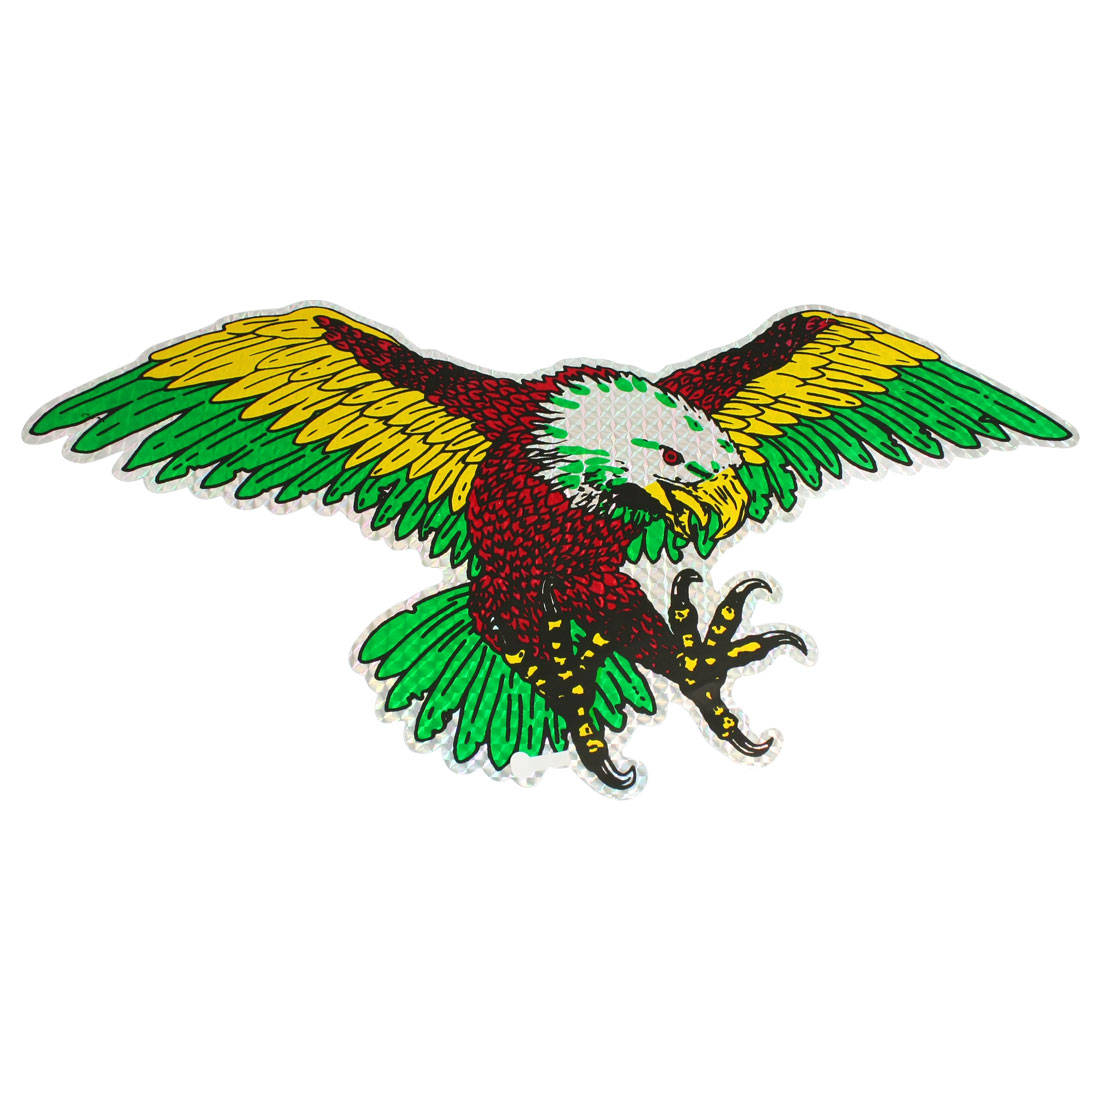 "Colorful Eagle Bird Design Blink Decal Decoration Car Sticker 17.5"" x 8.7"""